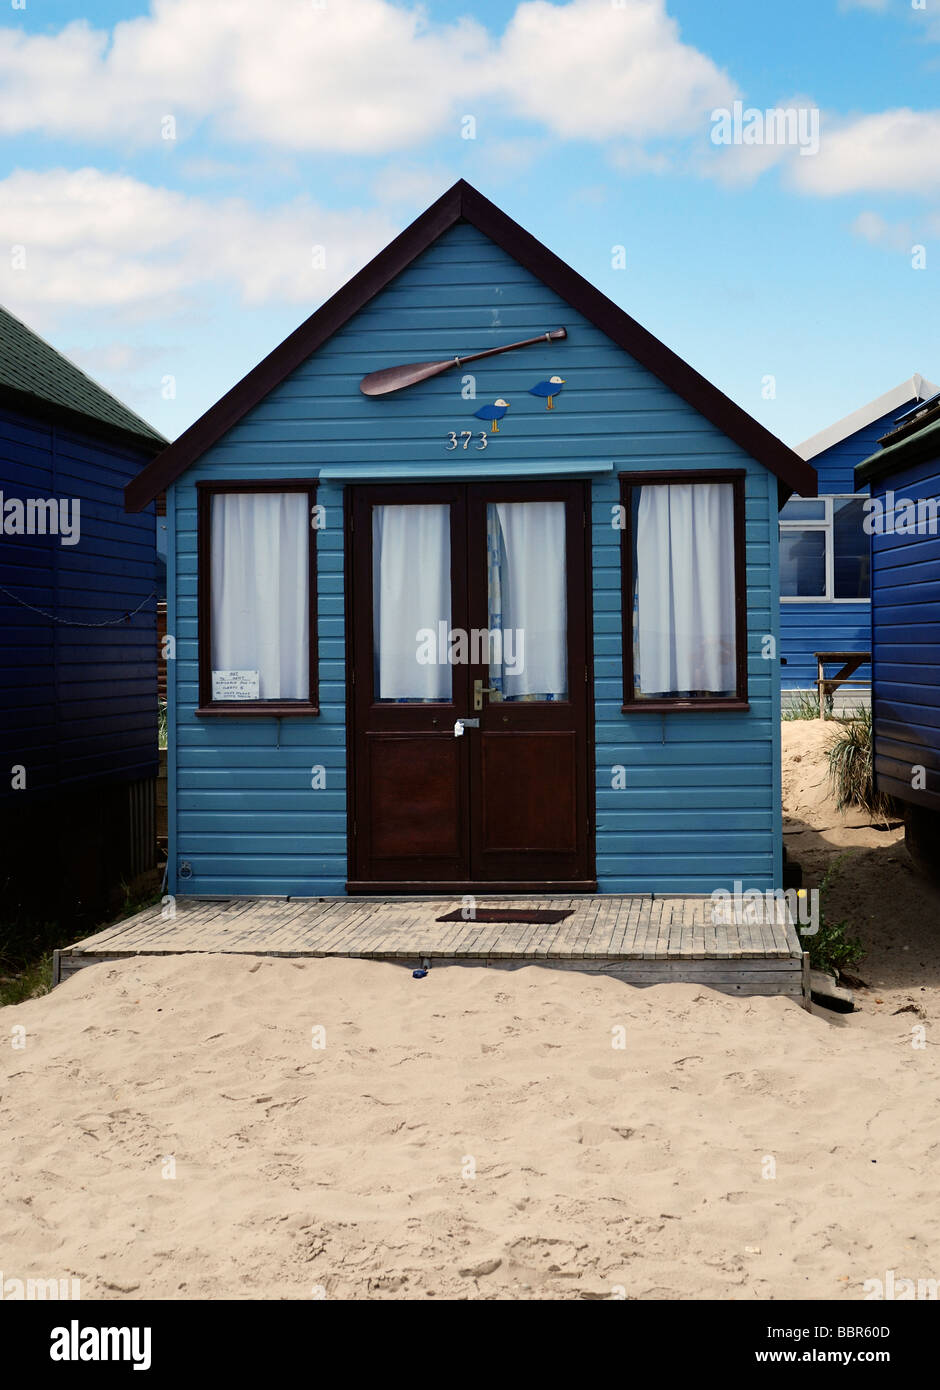 A large deluxe beach hut - Stock Image